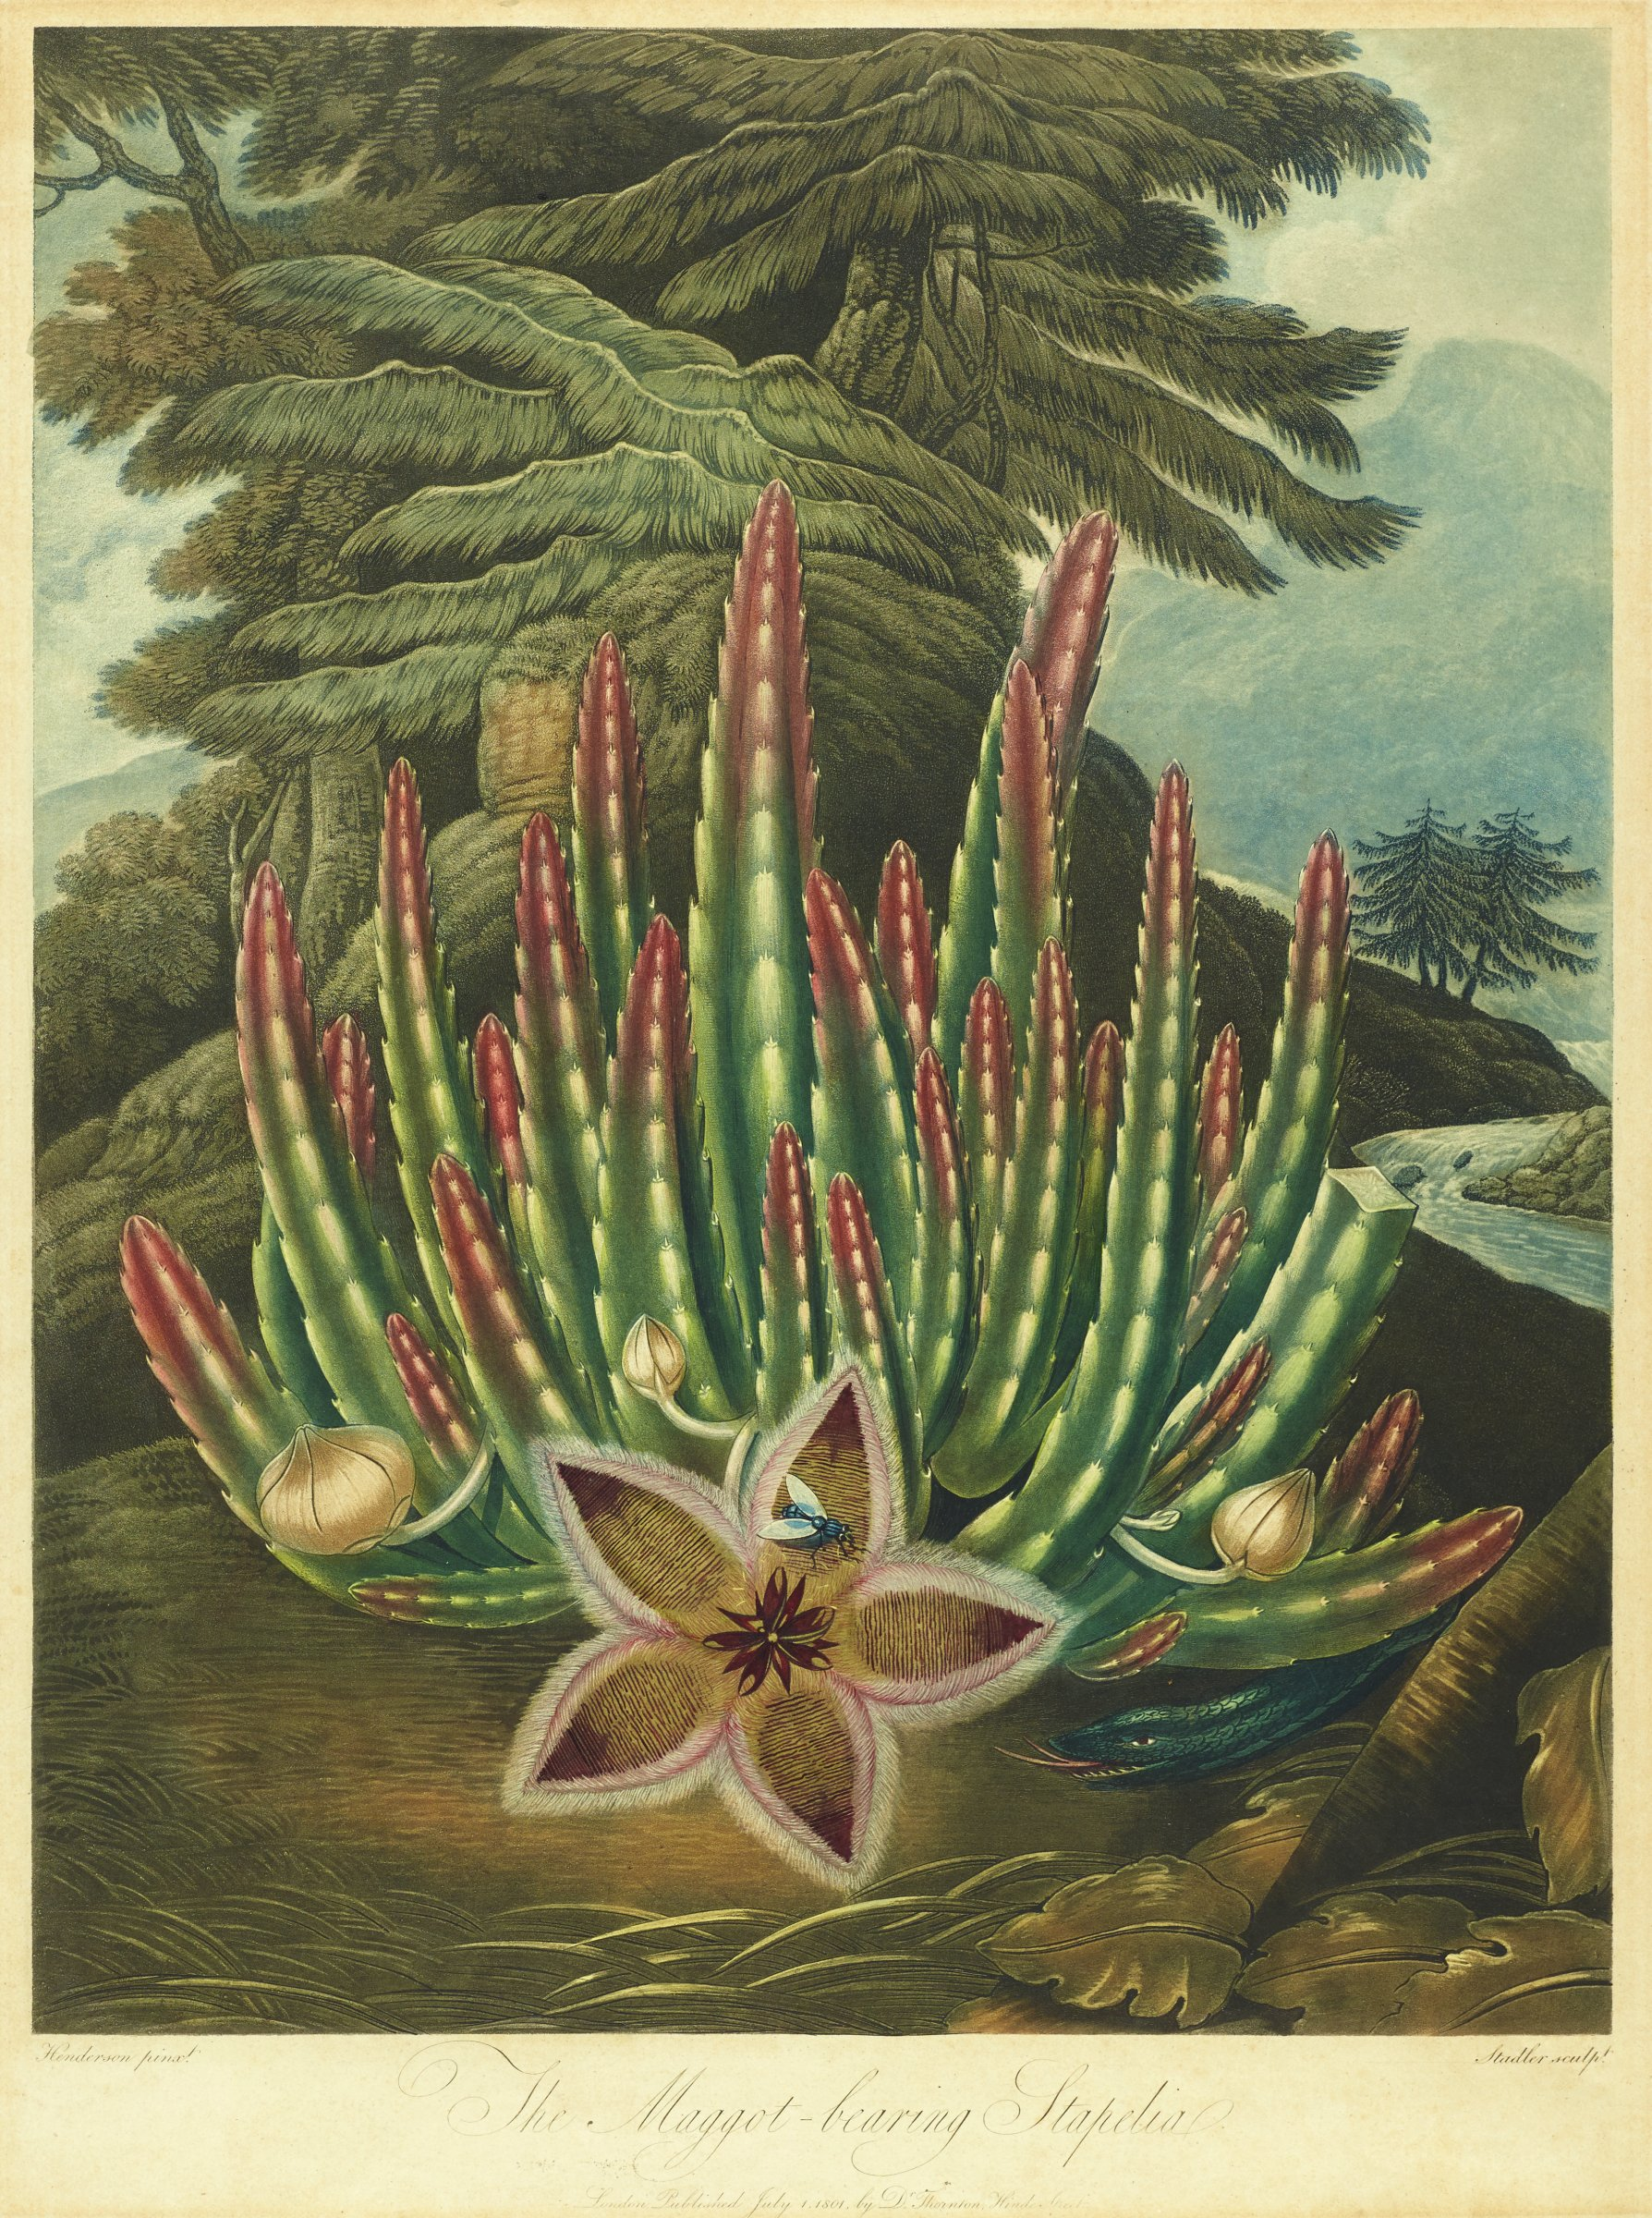 The Maggot-bearing Stapelia, from The Temple of Flora, Peter Charles Henderson, Printed by Joseph Constantine Stadler, Published by Robert John Thornton, aquatint, stipple, line, hand-colored